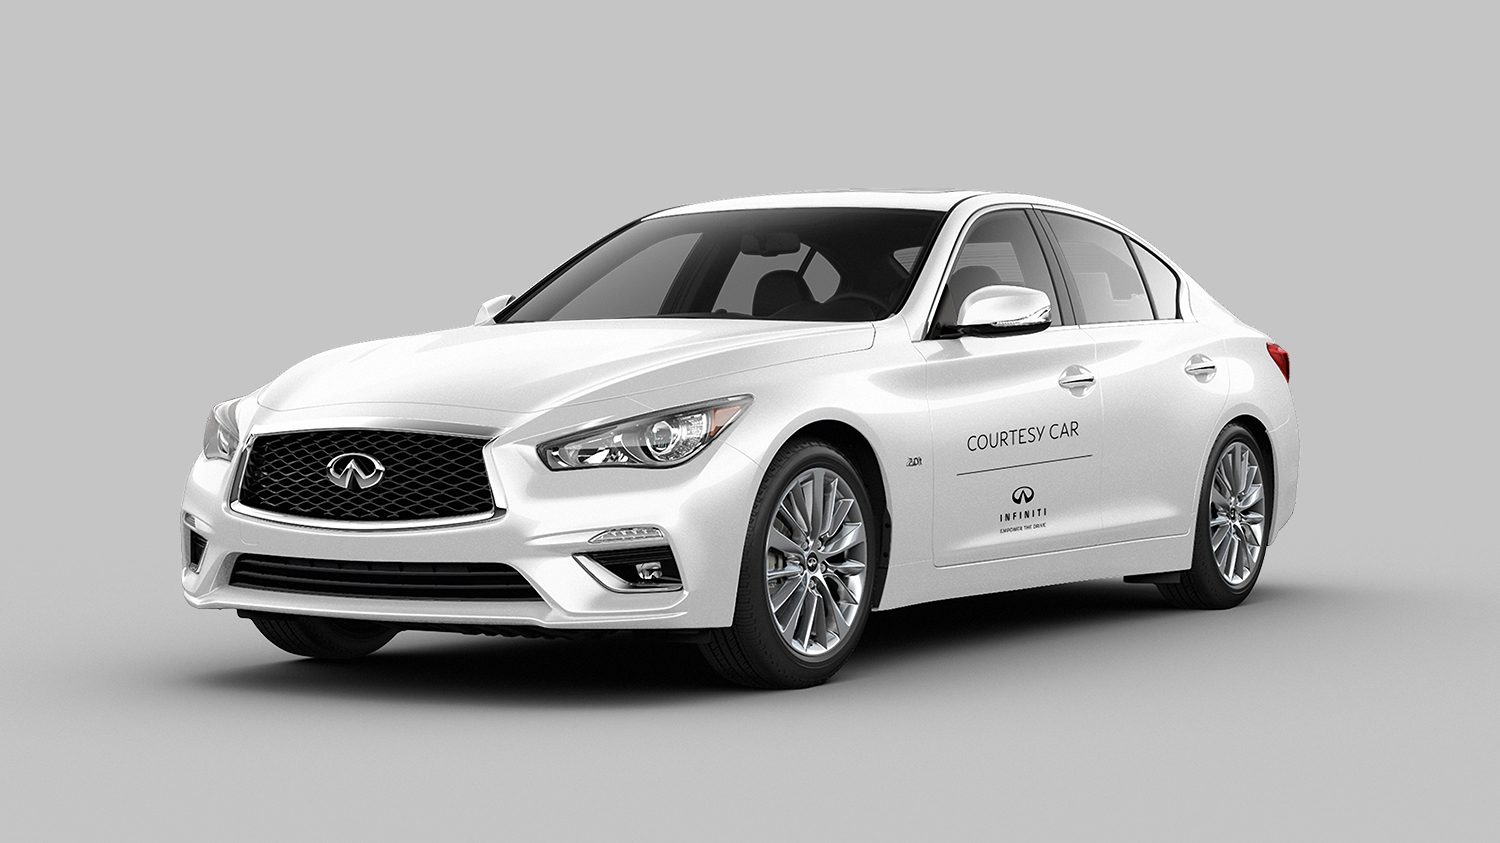 INFINITI COURTESY VEHICLE